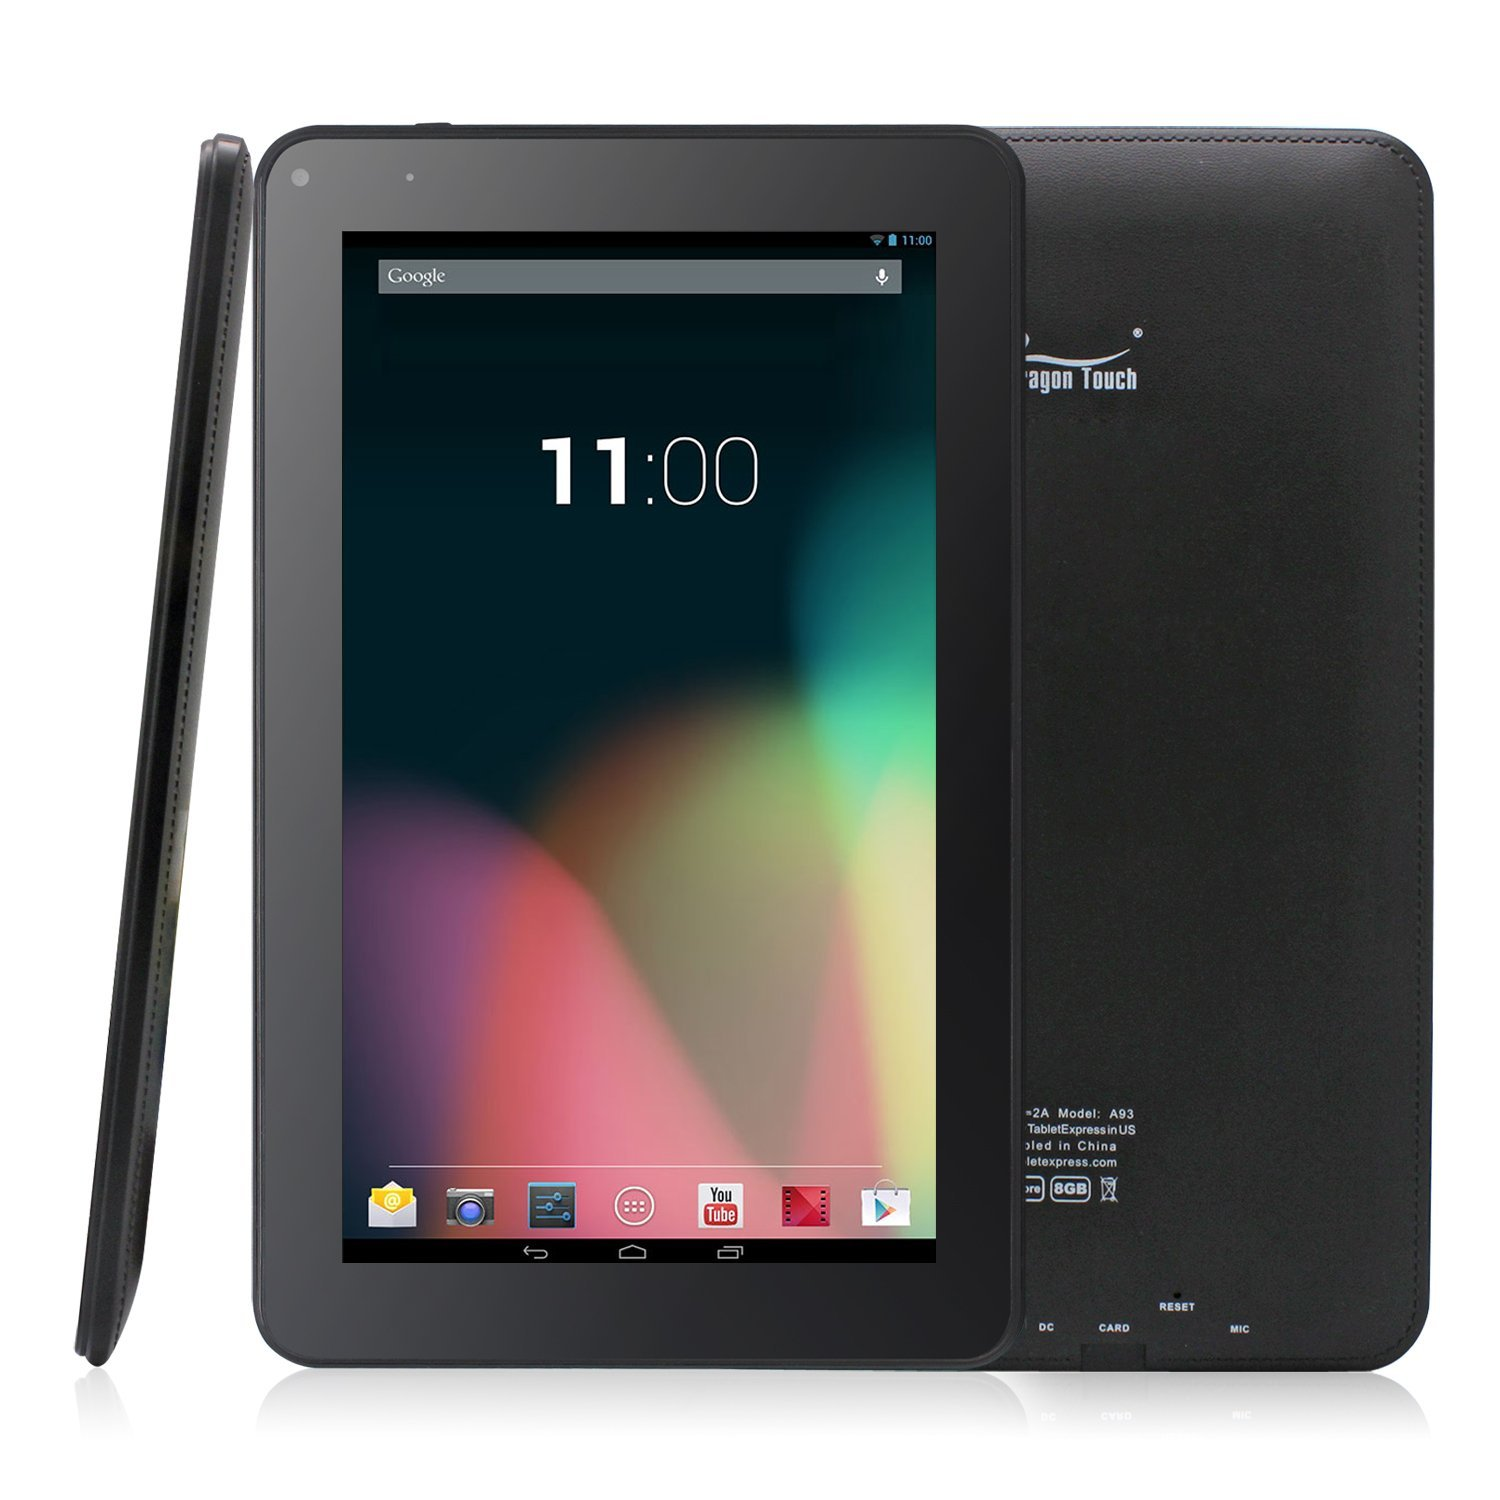 Küchenplaner Tablet Android 10 Best 8 Inch Android Tablet Options To Meet In The Middle